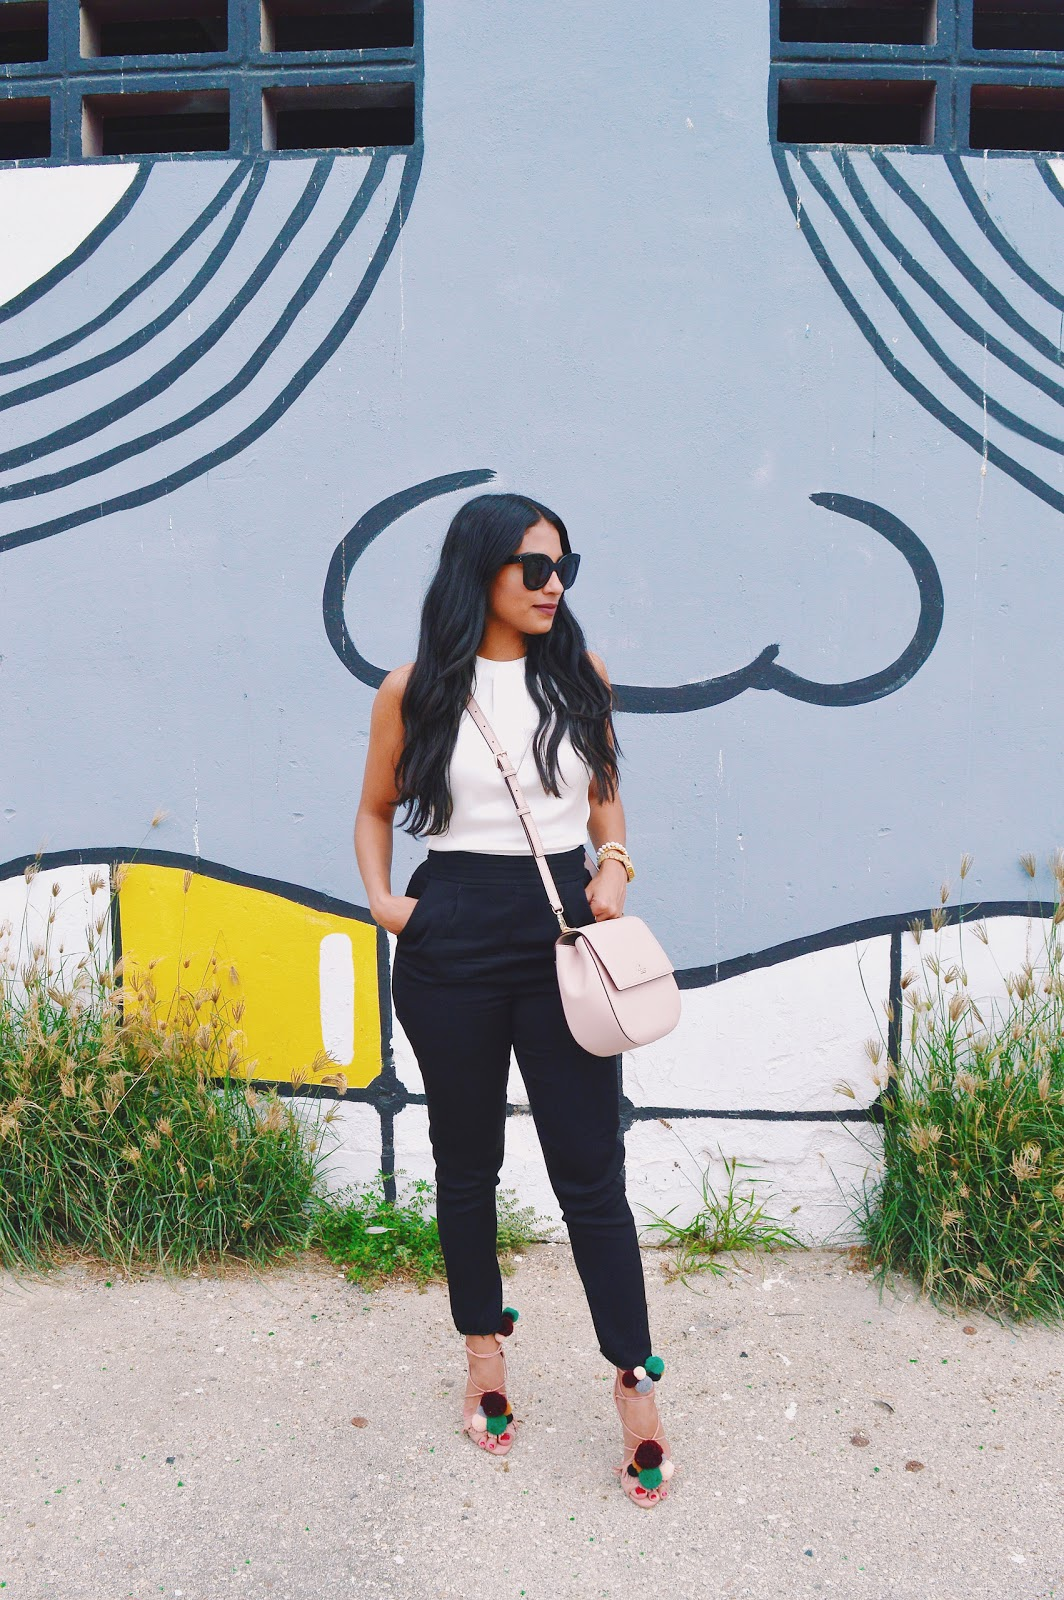 kate spade jumpsuit classic black and white womens fashion the fashionably late blog by aishly tromp